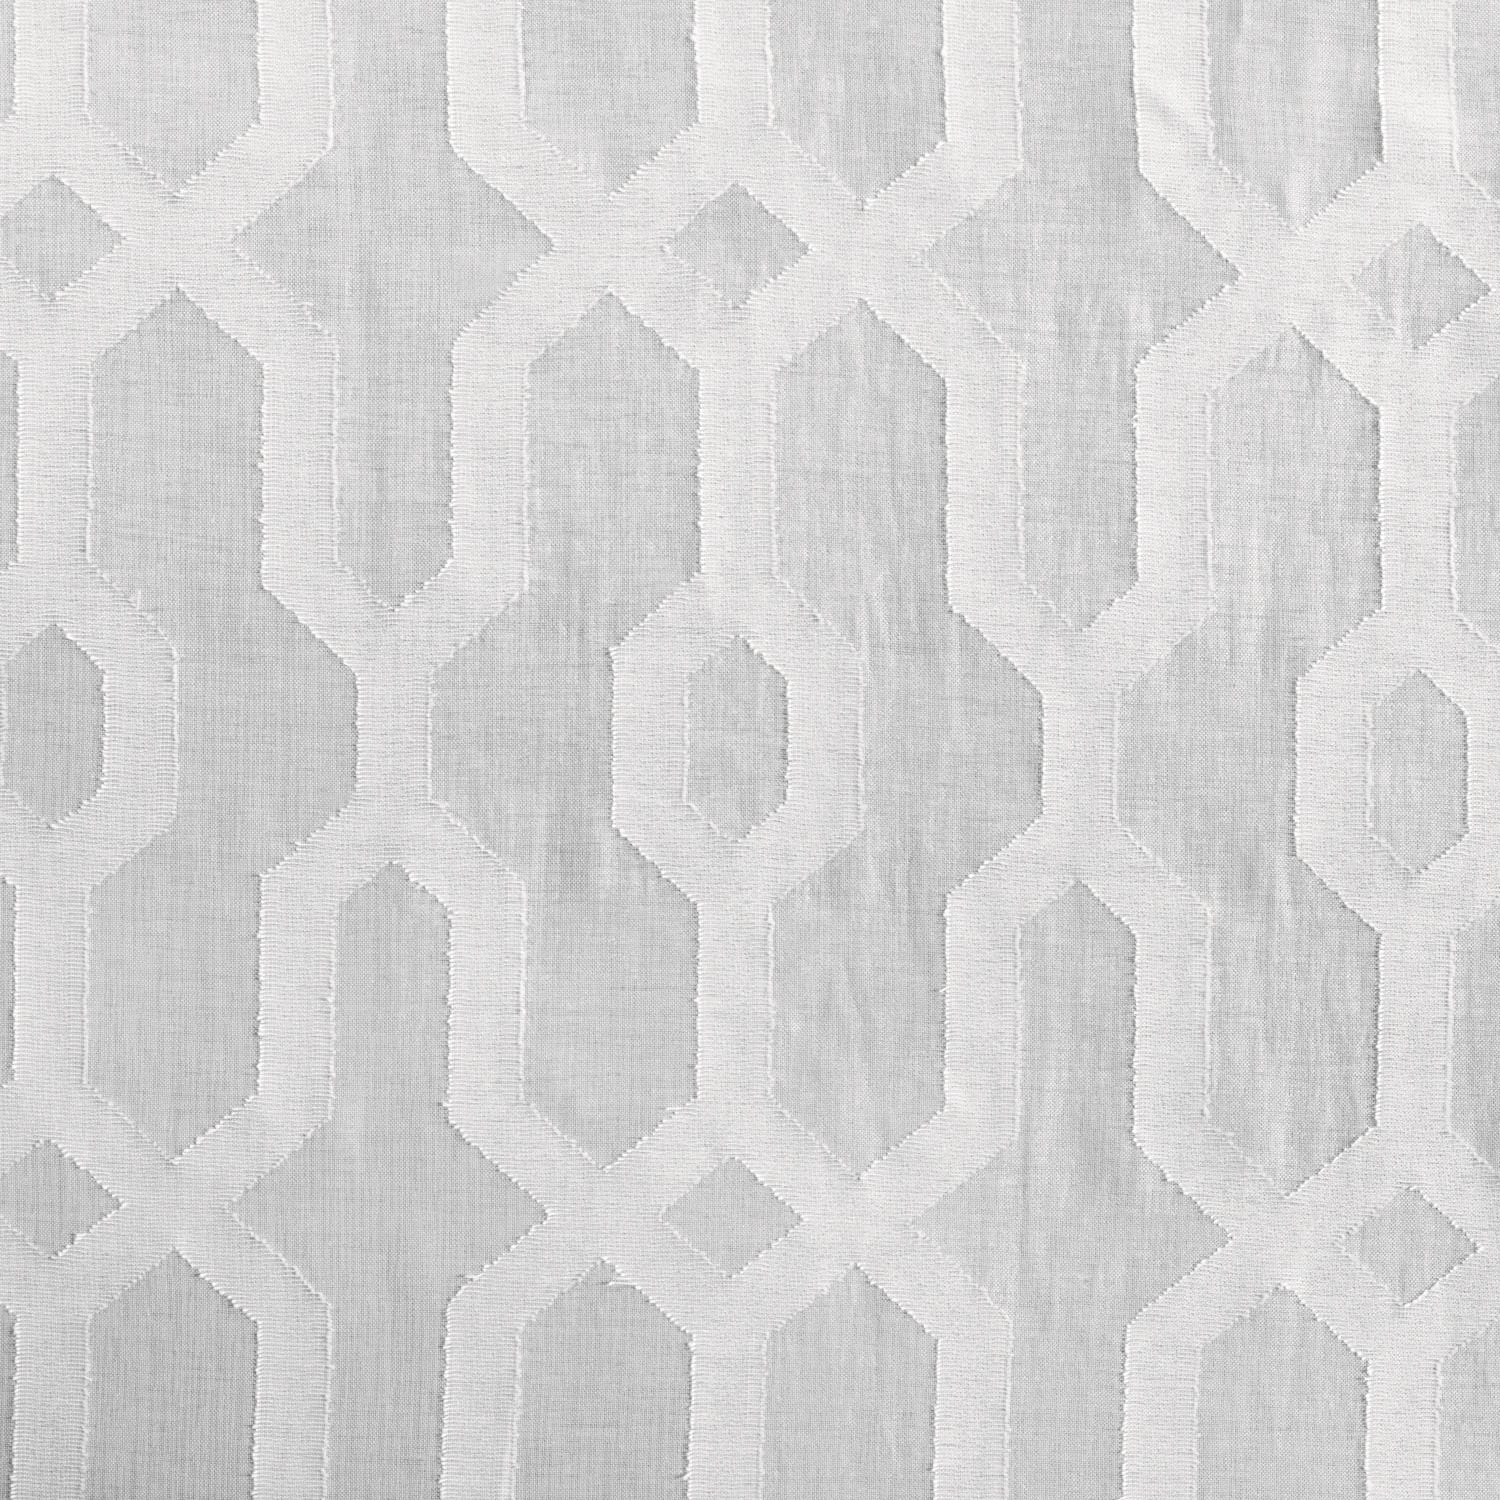 Limoges Geo White Patterned Faux Linen Sheer Swatch